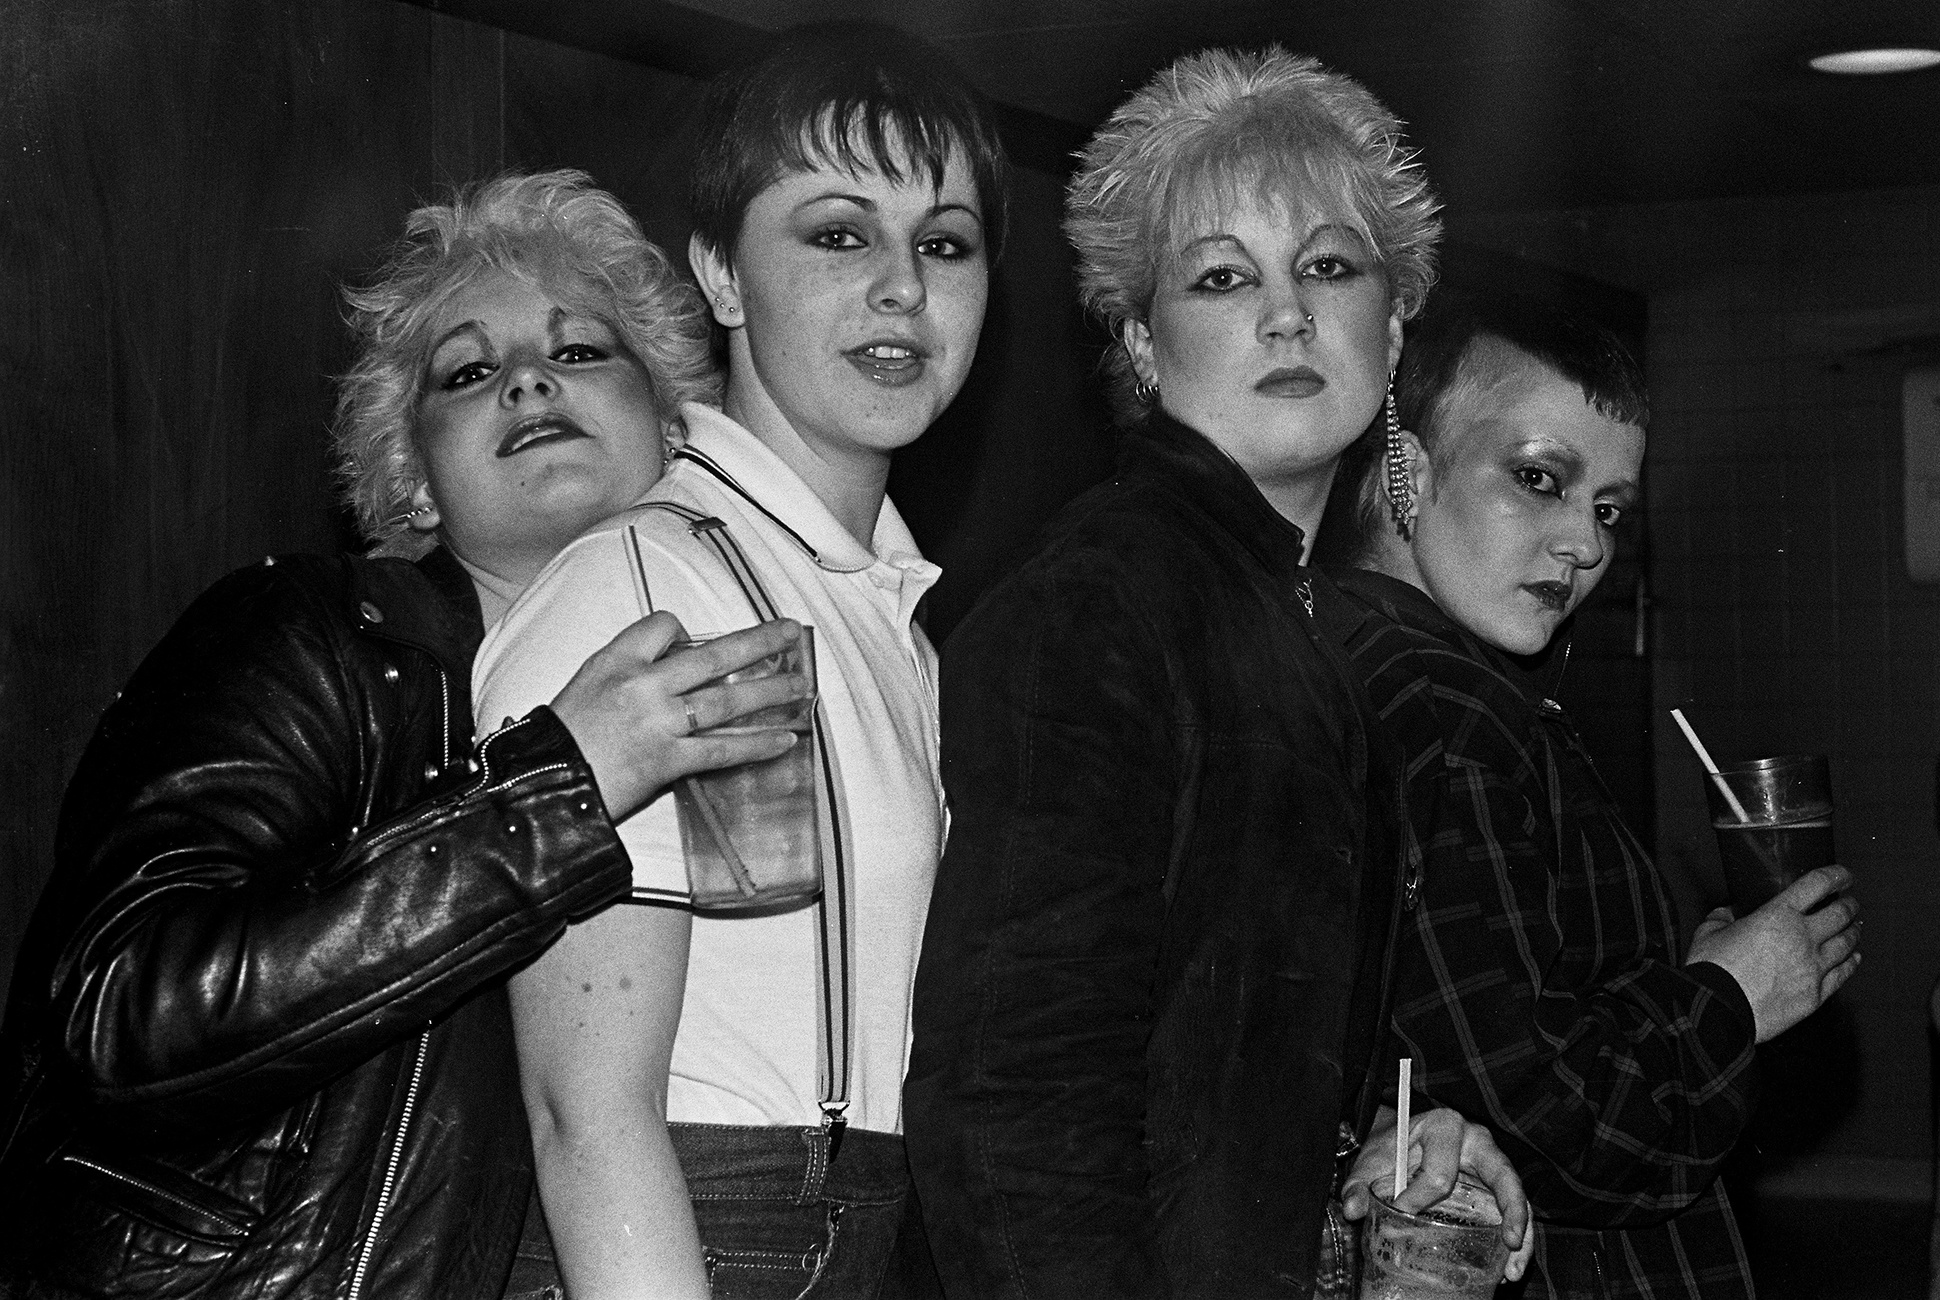 Punk and skinhead girls at a gig with peroxide hair, leather jackets and Fred Perry shirt, Hastings, 1981 by Clare Muller